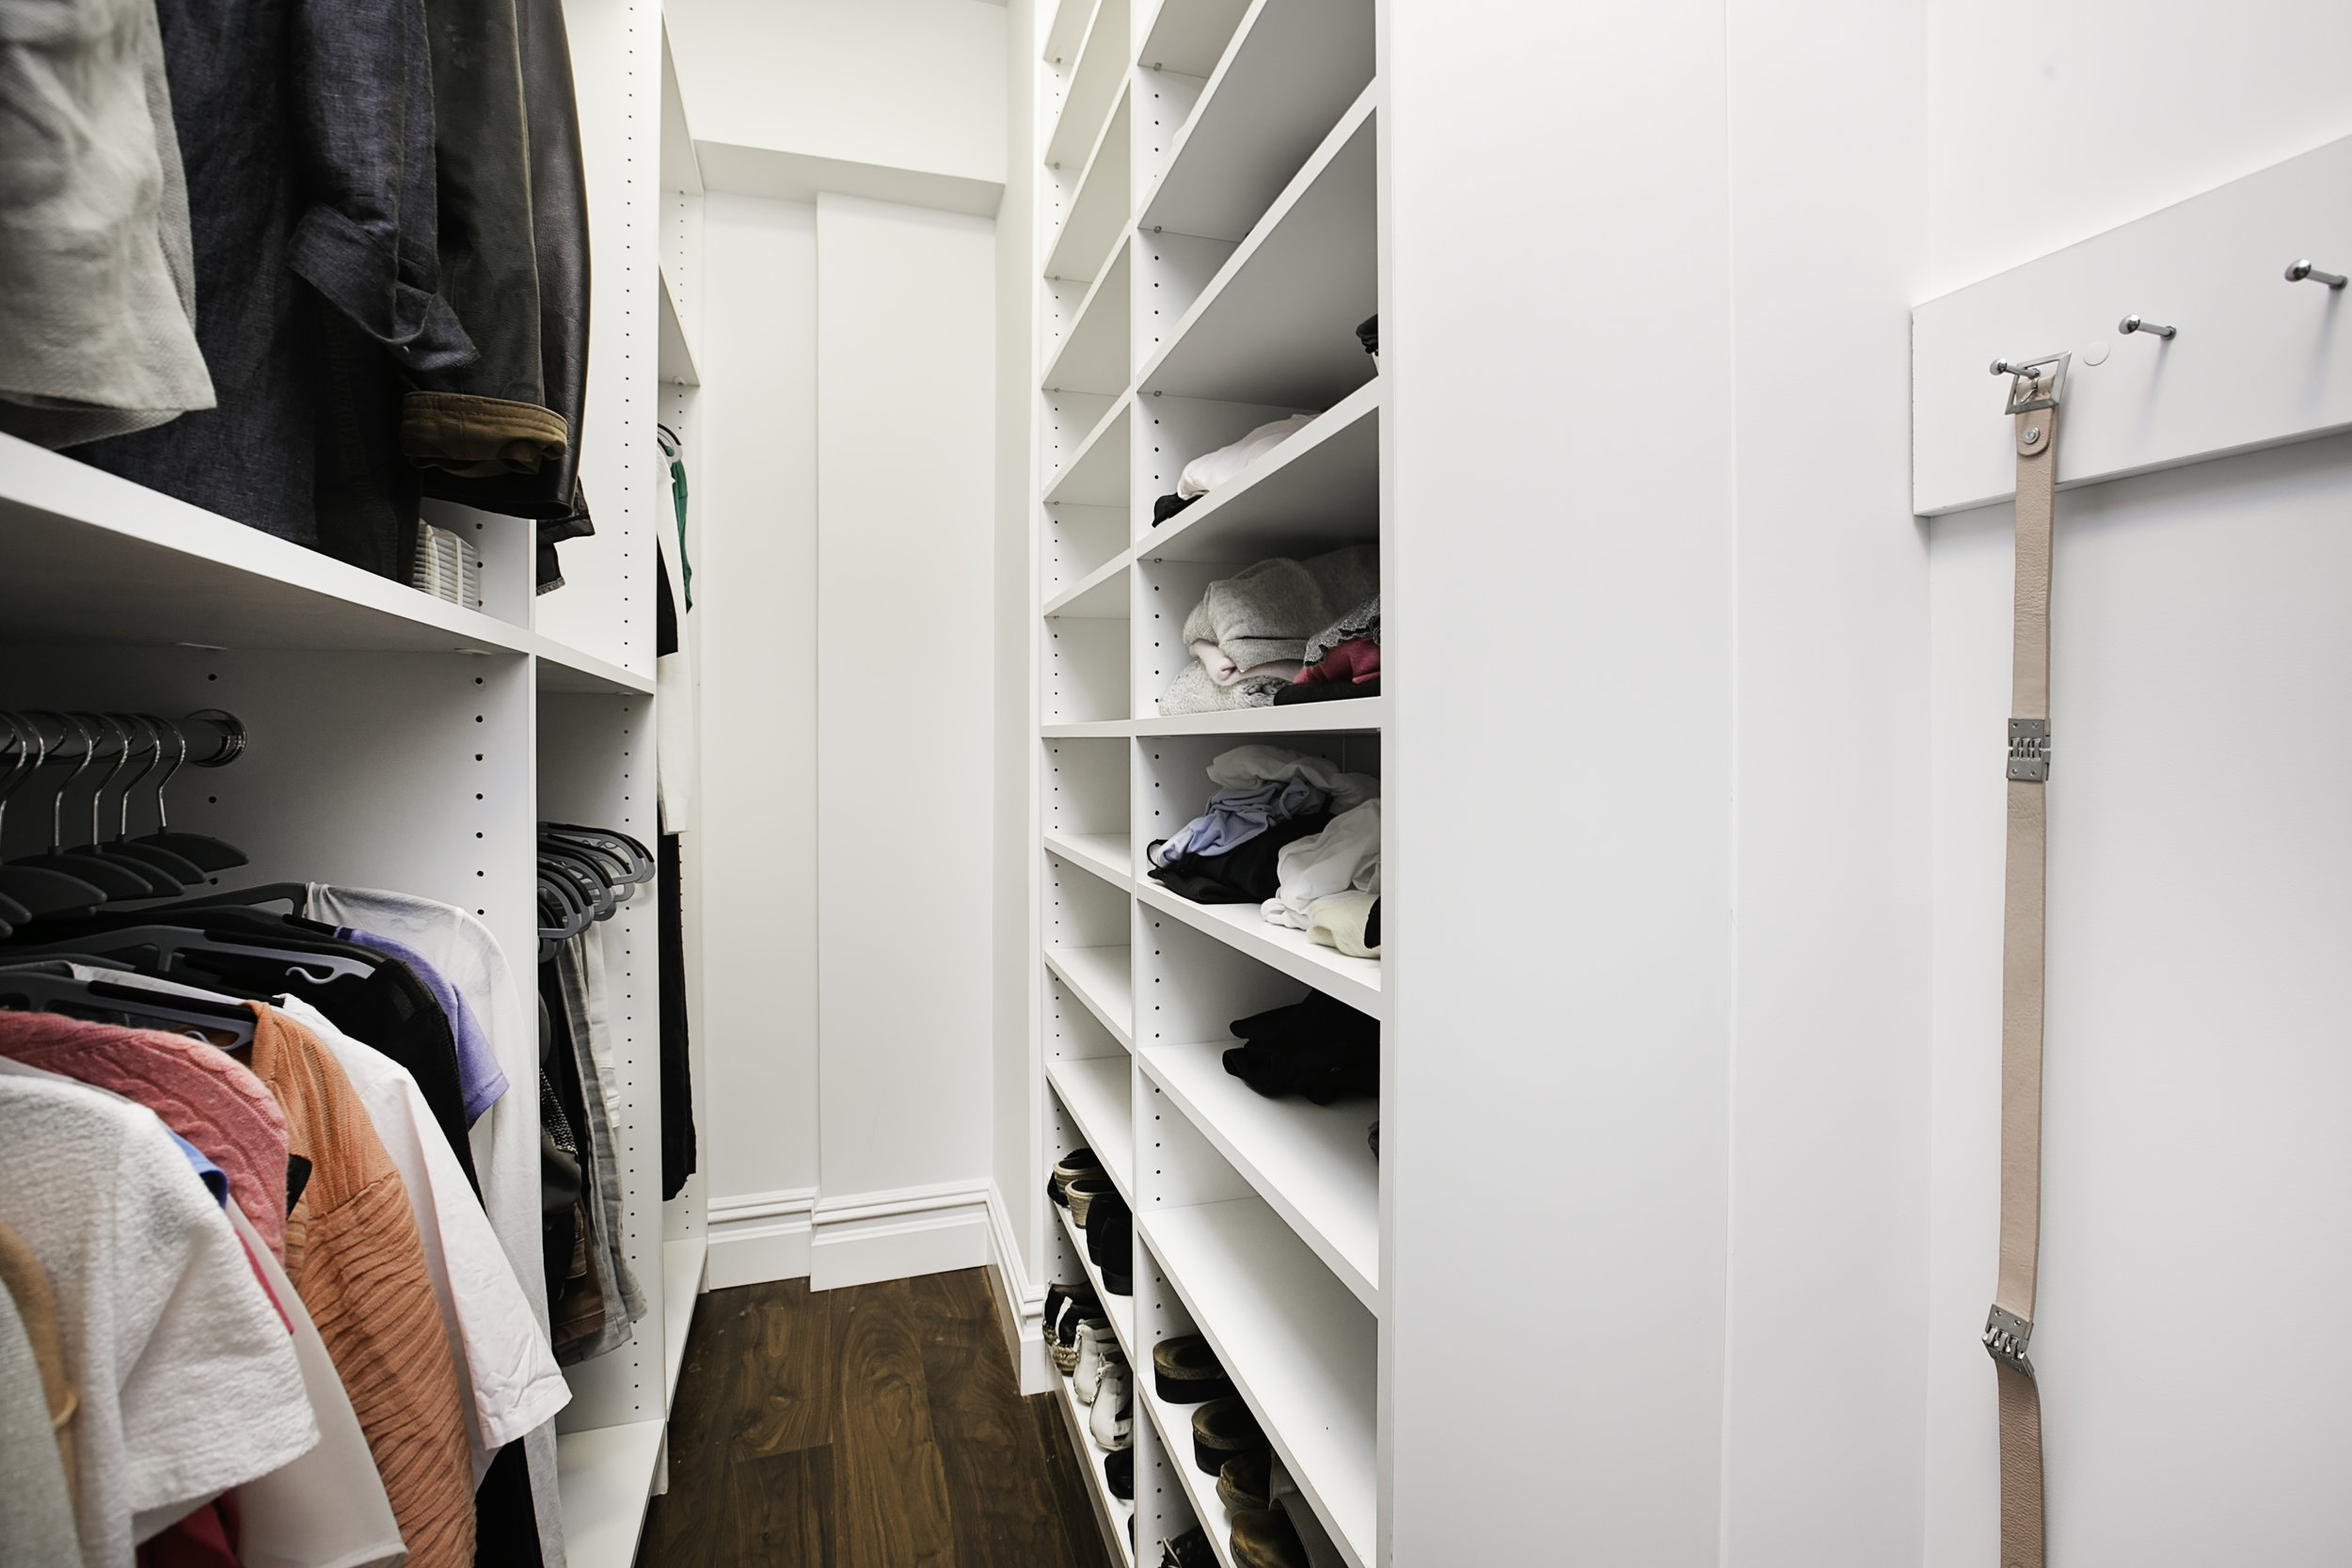 You are in charge - Each closet section can be tailored to exactly how you need it.